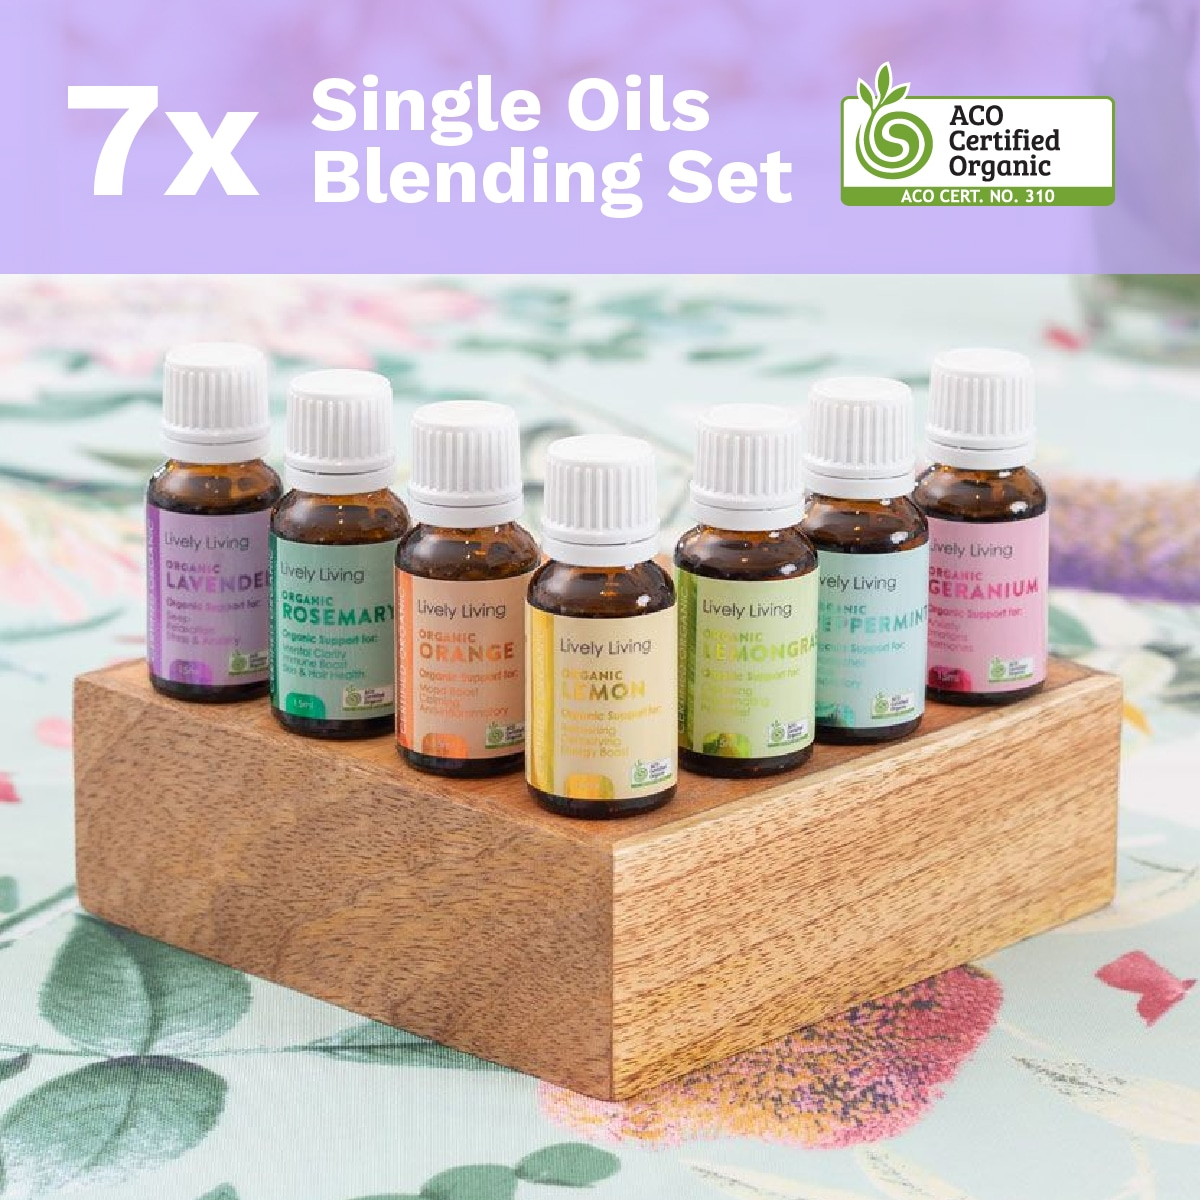 7x SINGLE OILS BLENDING SET